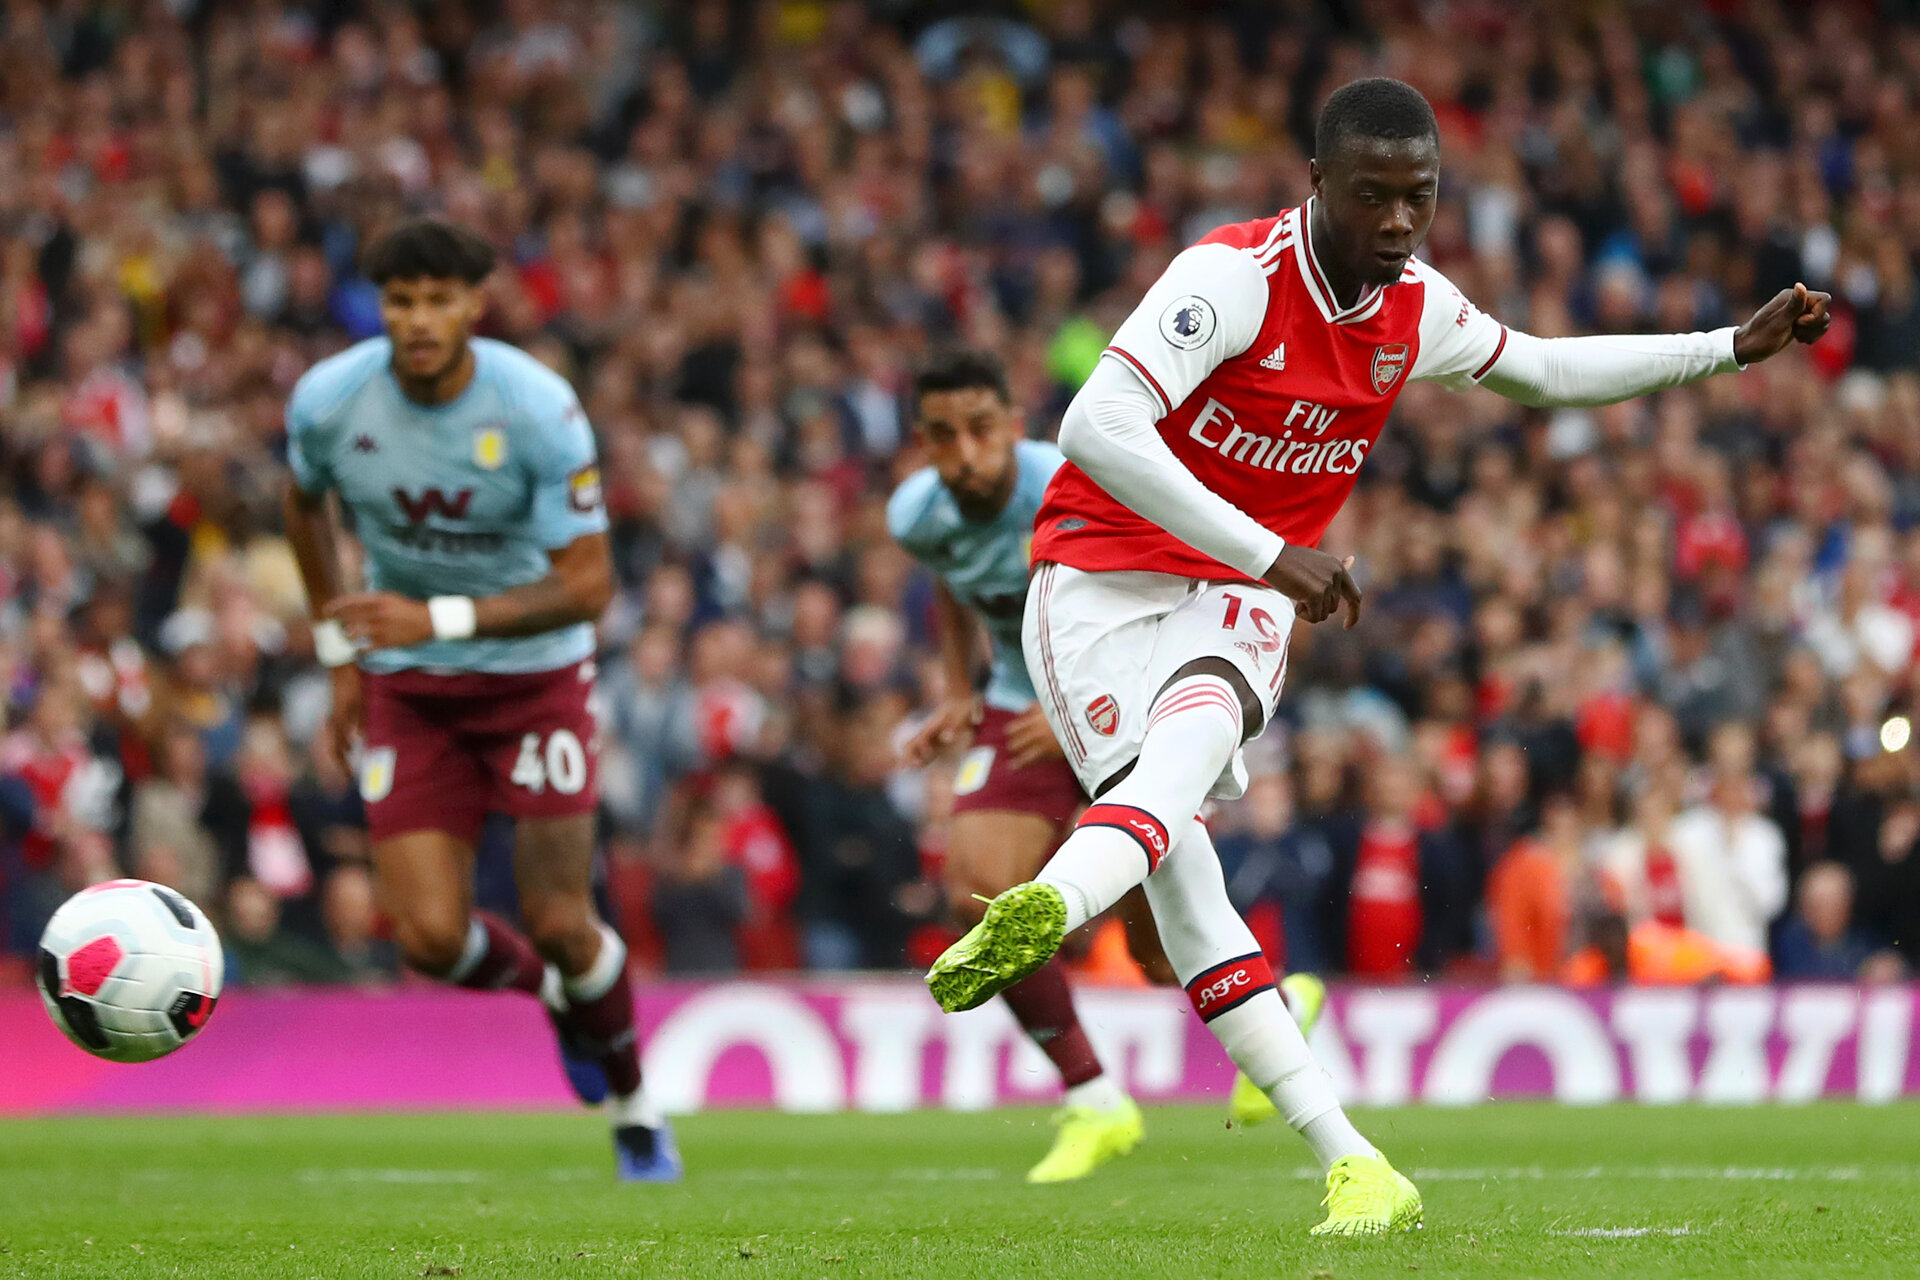 LONDON, ENGLAND - SEPTEMBER 22: Nicolas Pepe of Arsenal converts his sides penalty and scores their first goal of the game during the Premier League match between Arsenal FC and Aston Villa at Emirates Stadium on September 22, 2019 in London, United Kingdom. (Photo by Michael Steele/Getty Images)